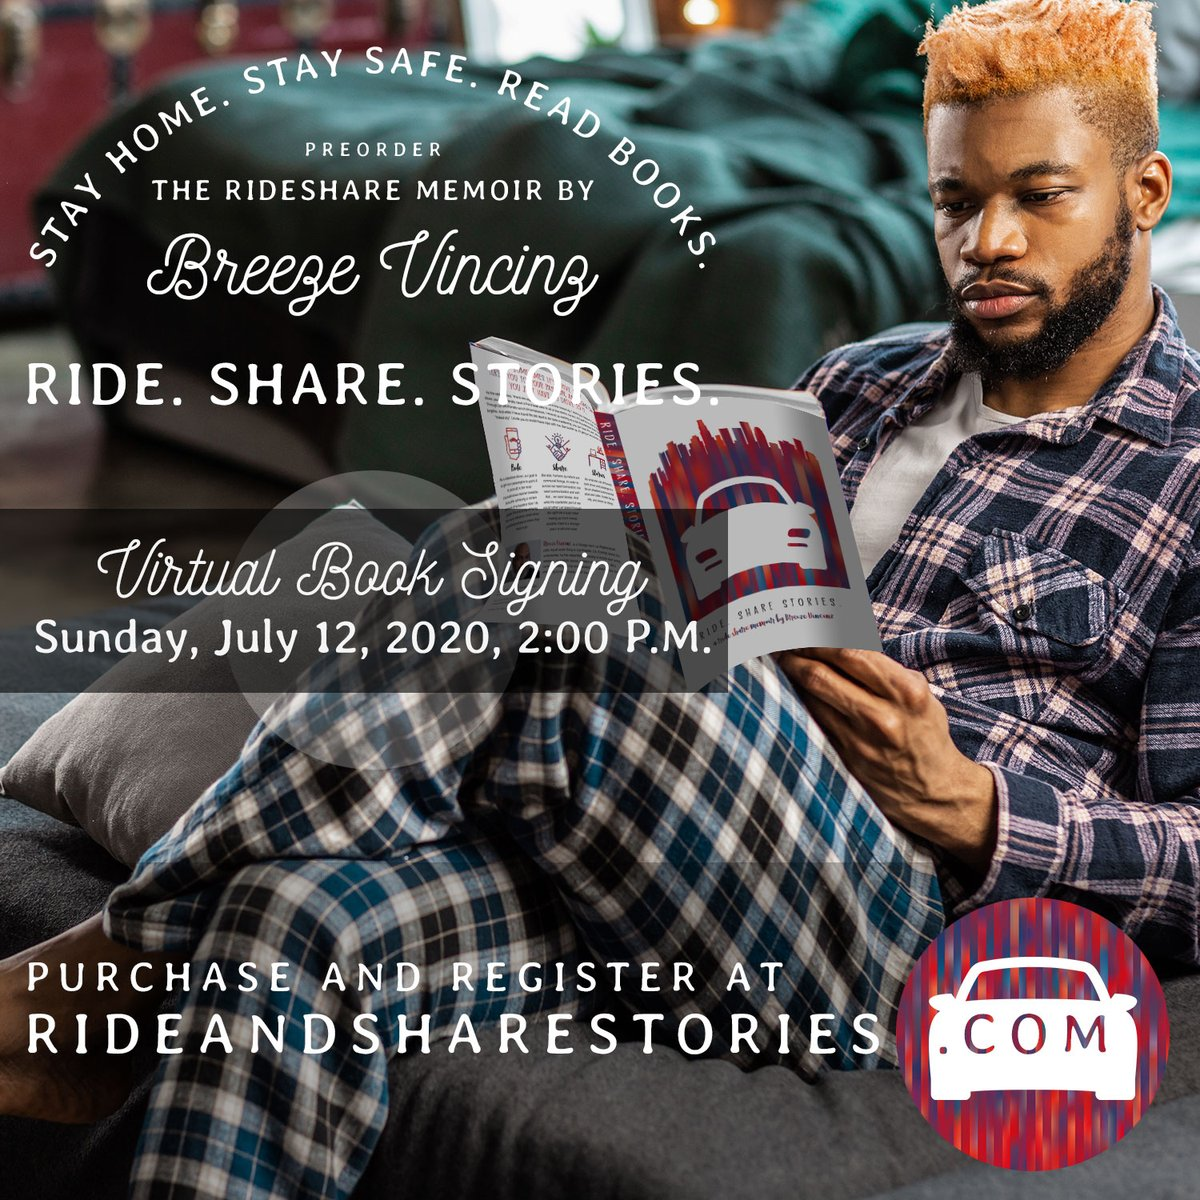 Ride. Share. Stories. Virtual Book Signing This Sunday. Available on Amazon in paperback and Kindle formats! Pick up your copy today! #AloneTogether #uberlife #BlackBooks #uber #readingisfundamental #blackauthors #blackauthorsmatter #BlackbooksMatter - https://mailchi.mp/9f195473656c/ride-share-stories-virtual-book-signing-this-sunday…pic.twitter.com/ojEtHZolhC